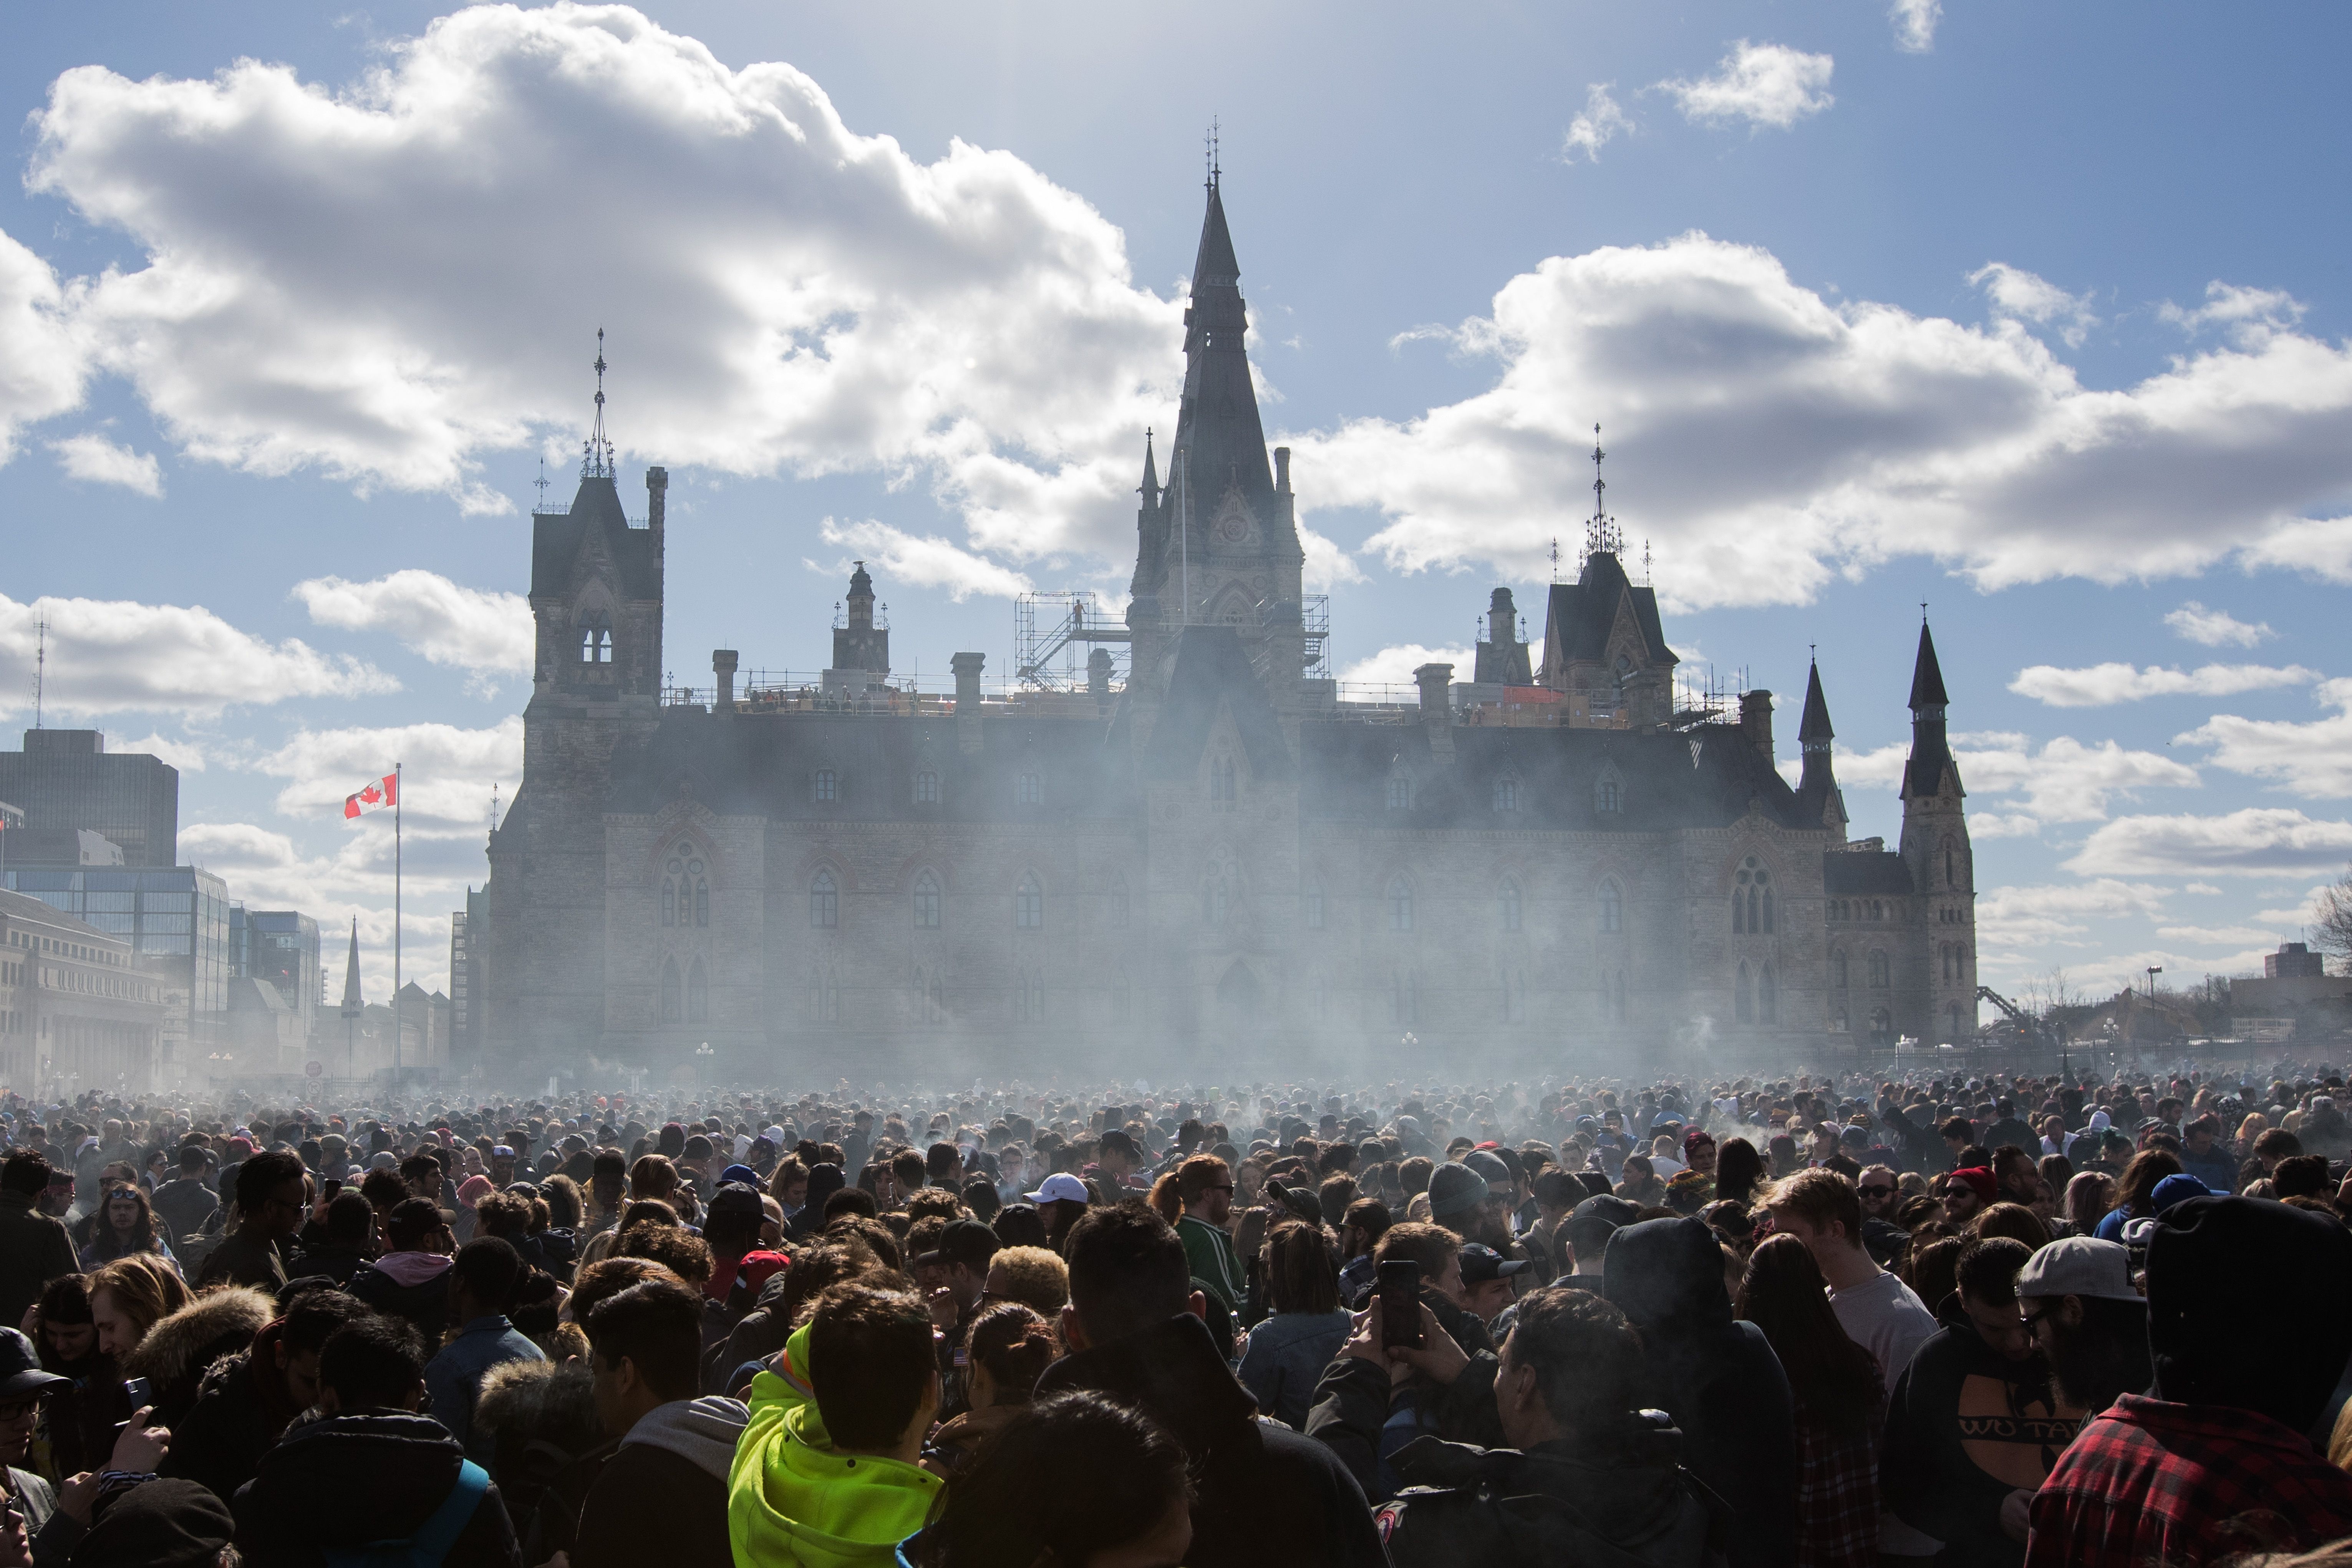 Marijuana smoke lingers in front of Parliament Hill during a 4/20 rally in Ottawa, Ontario, in Canada.